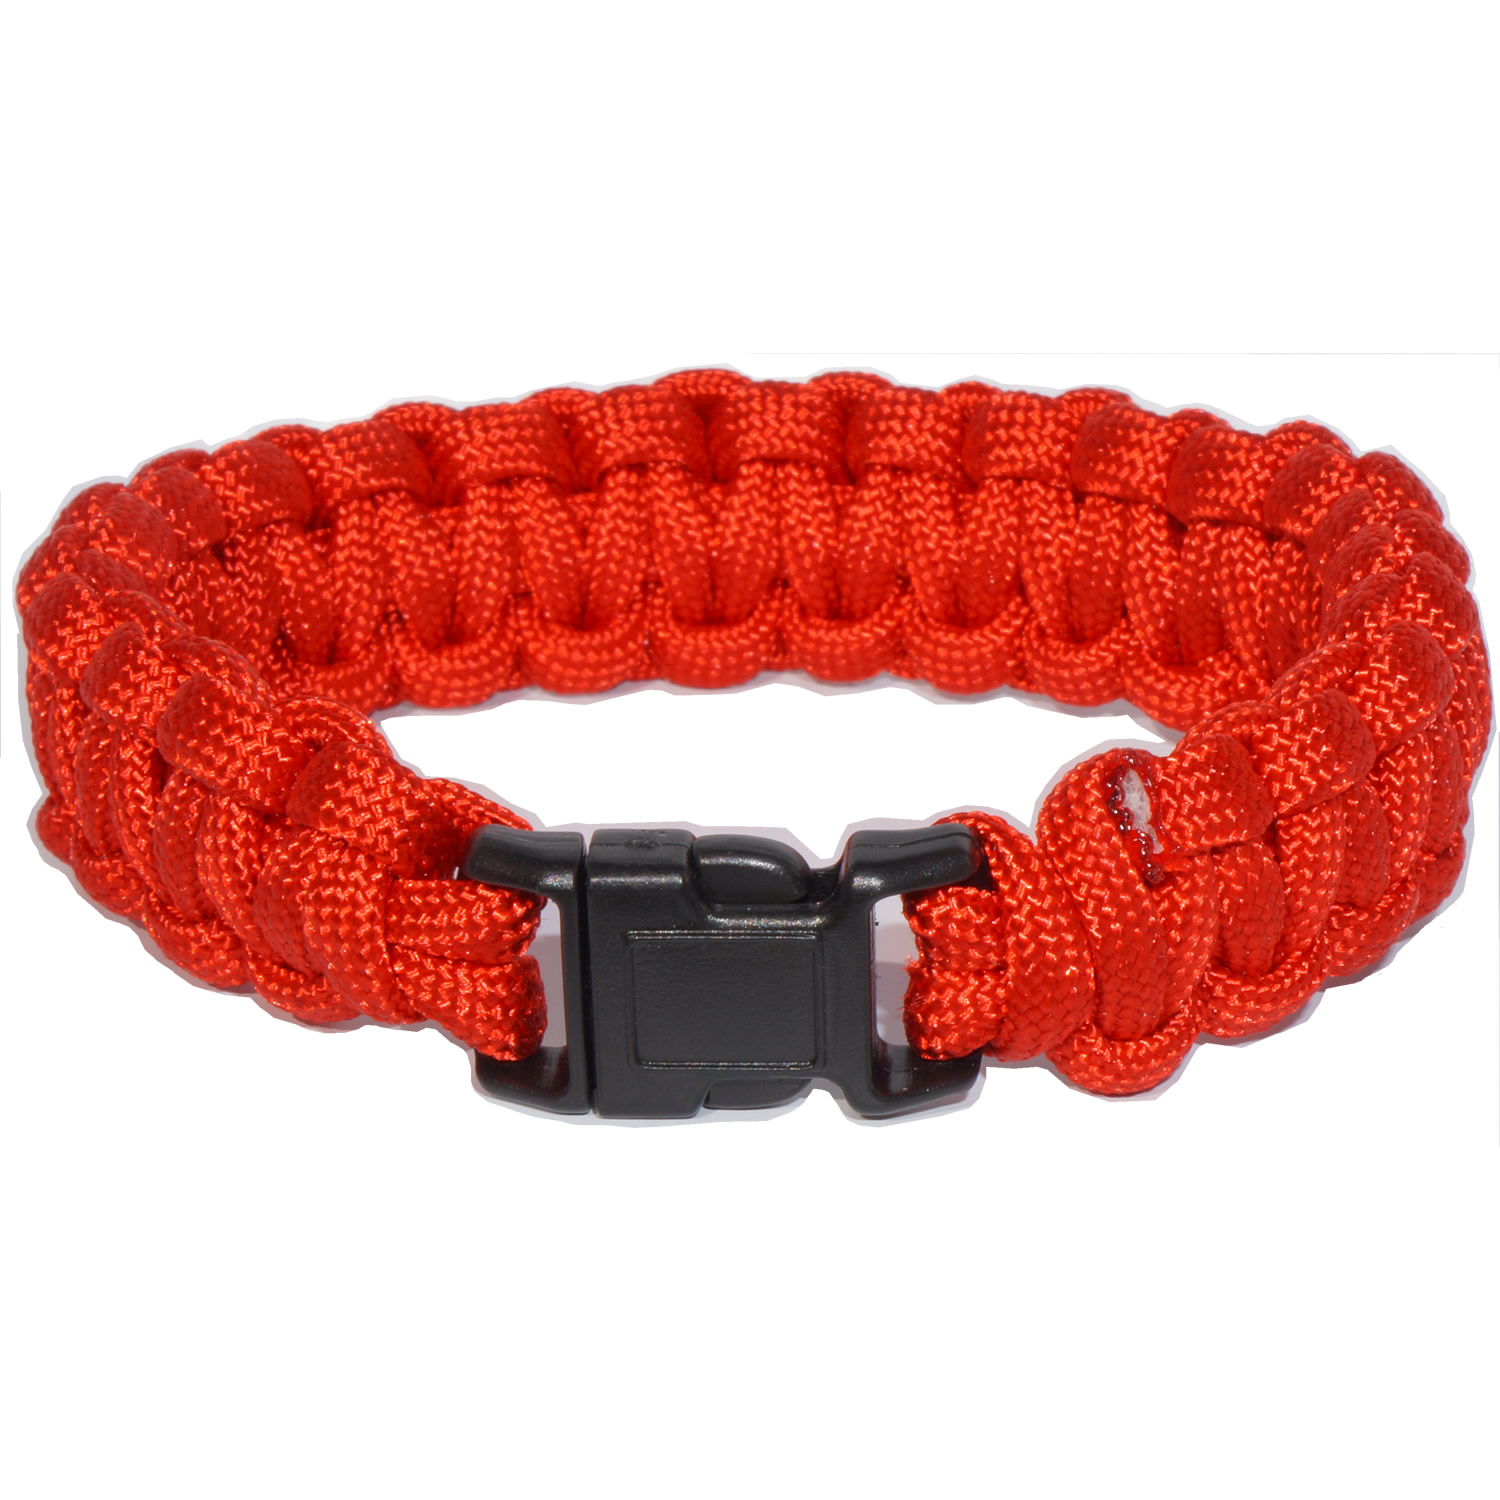 Every Day Carry 6 Ft Tactical Survival Paracord Bracelet Side Release Buckle